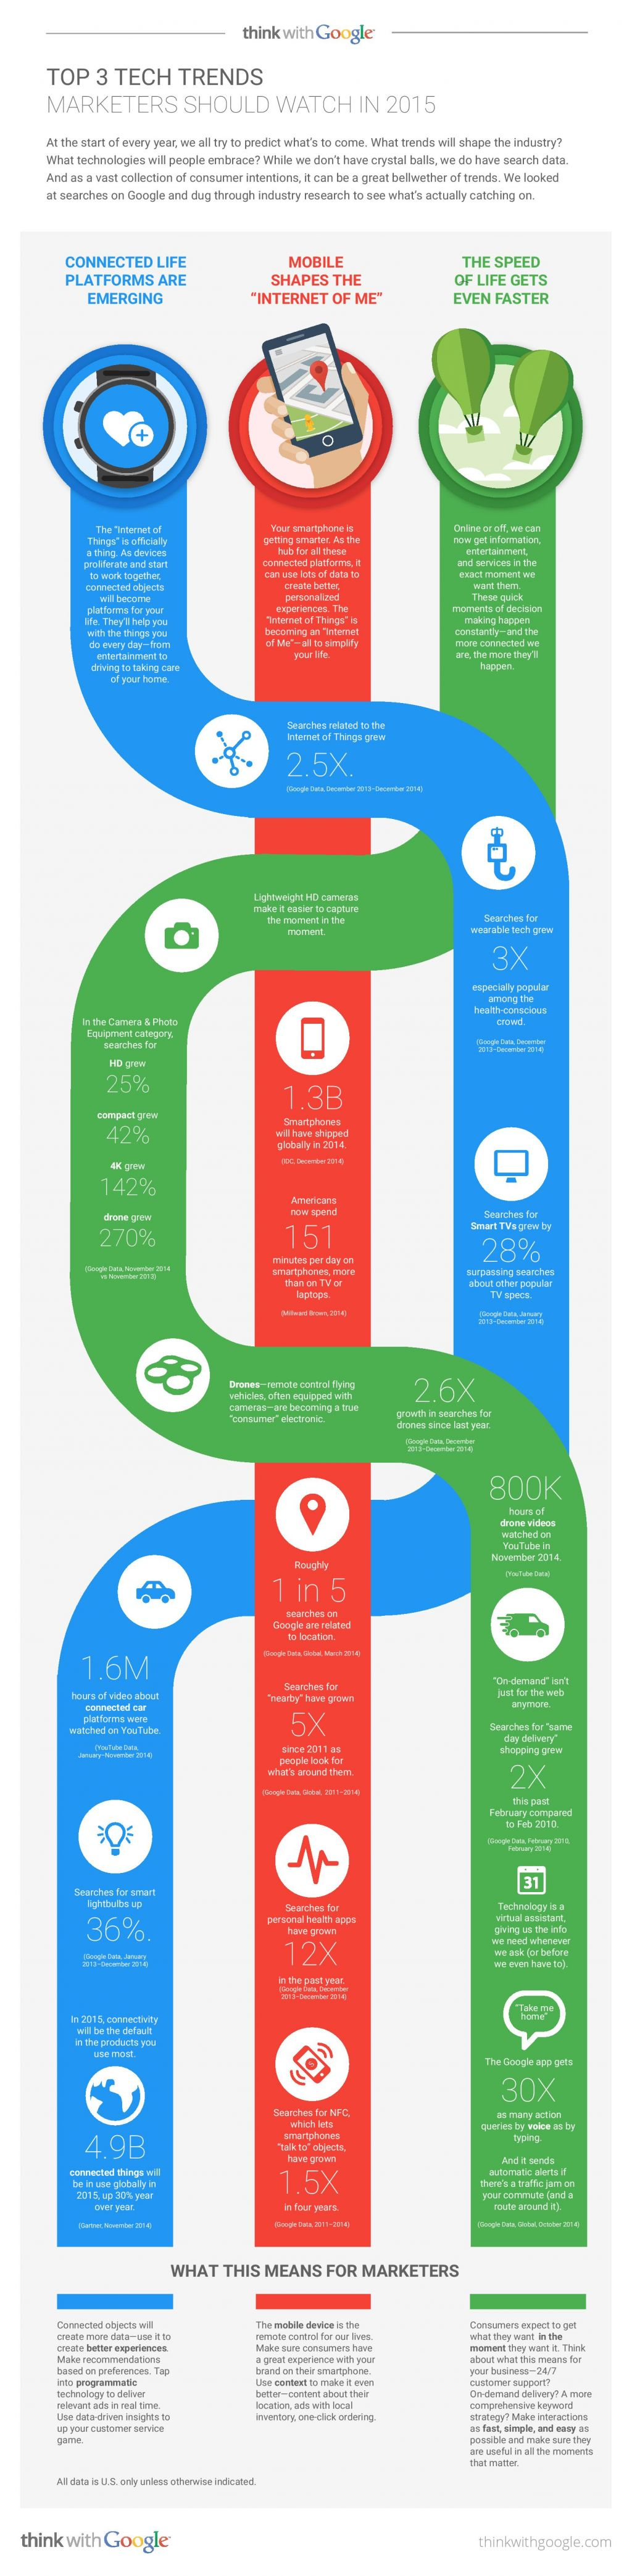 top-3-tech-trends-marketers-should-watch-in-2015_infographics-page-001